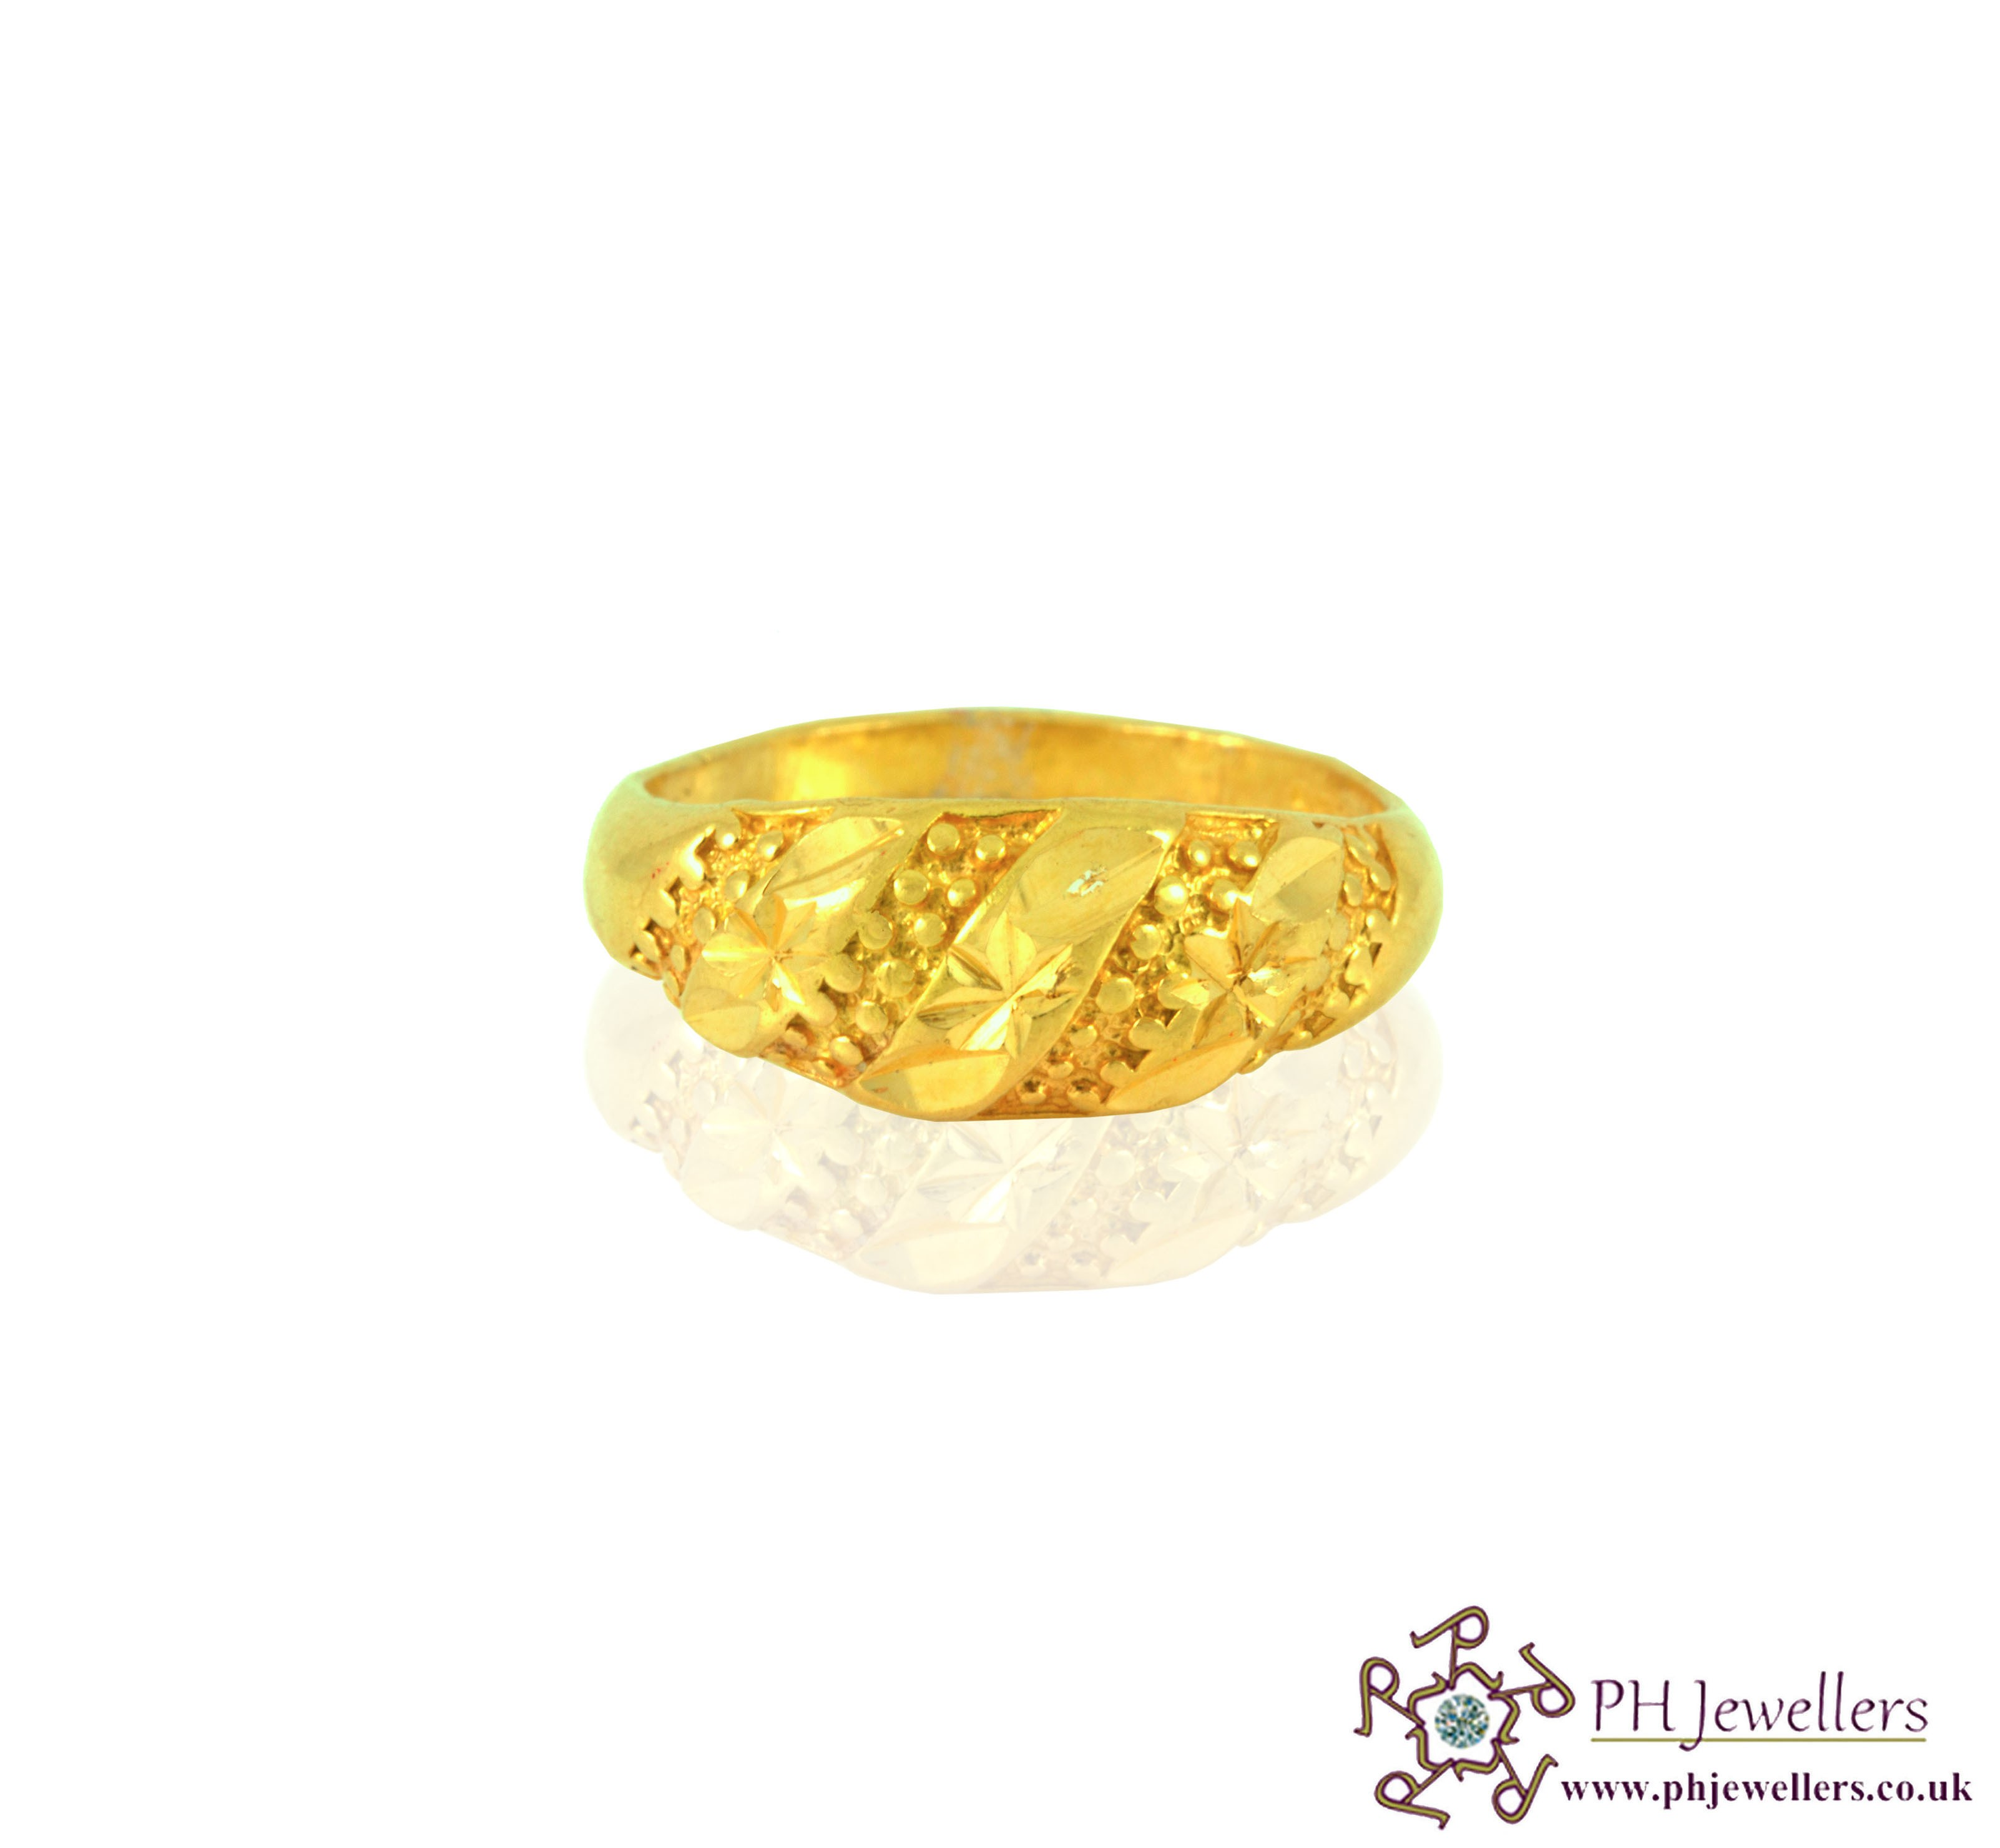 22ct 916 Hallmark Yellow Gold O,P,Q Ring PR1